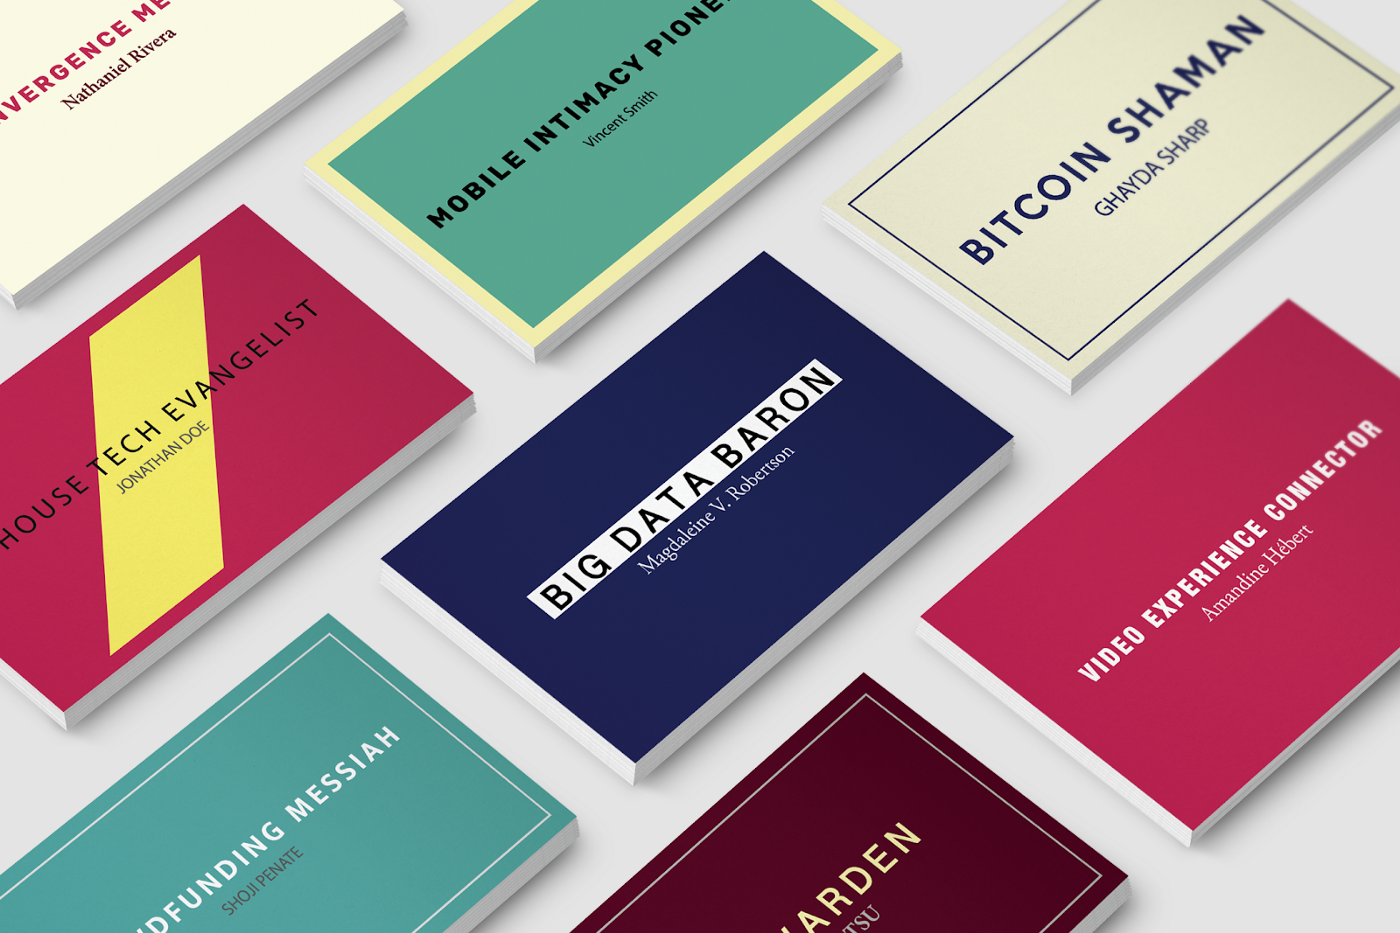 business cards with unusual job titles on them